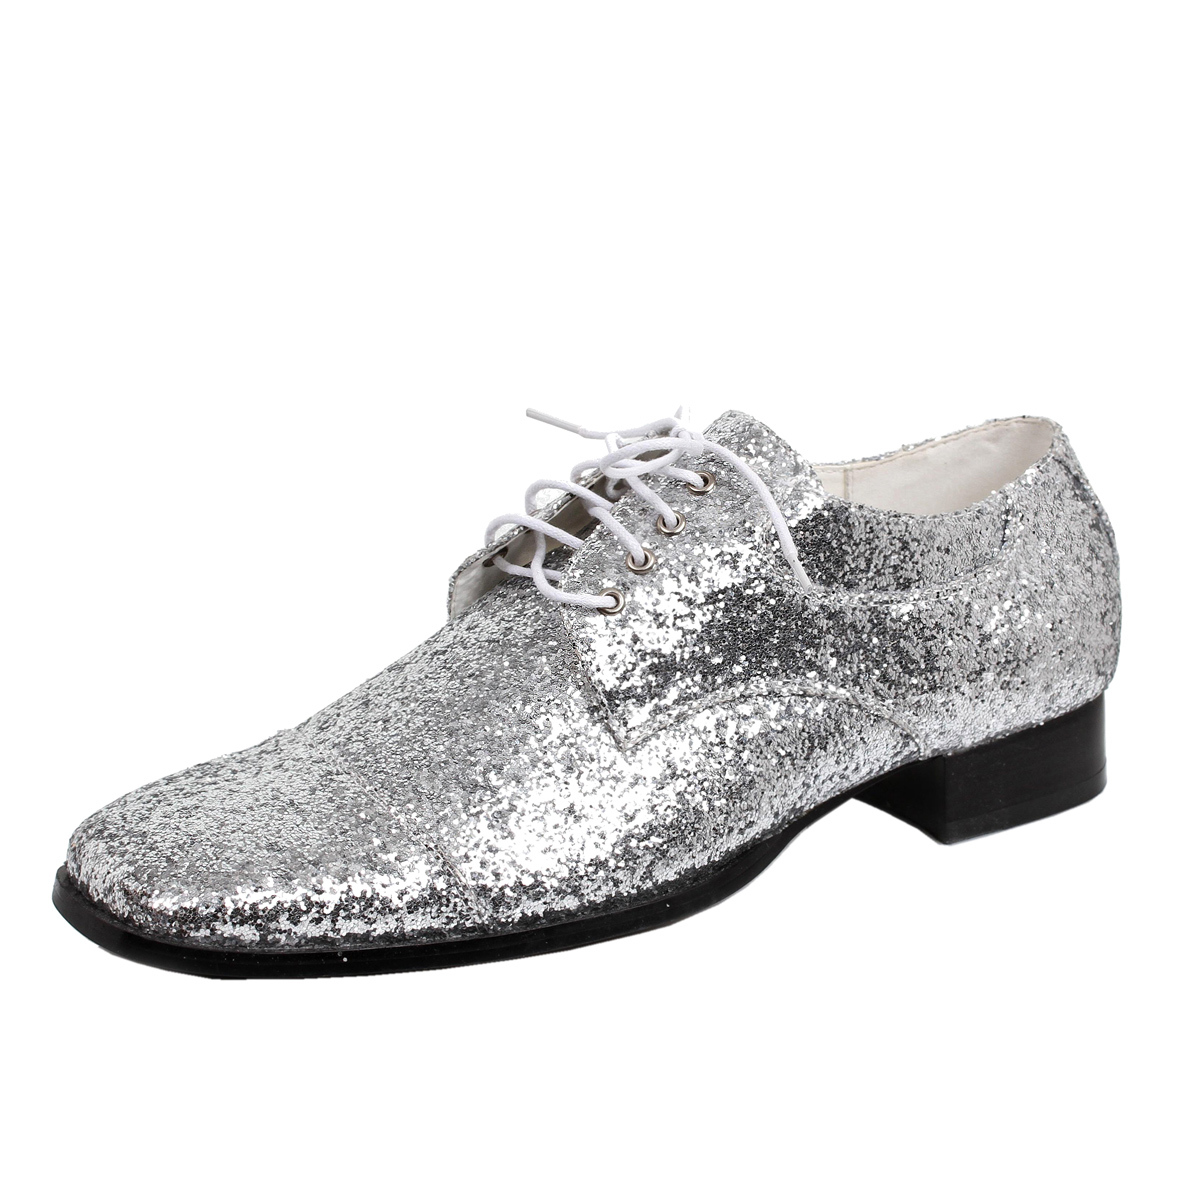 Mens Oxford Dress Shoes Silver Glitter